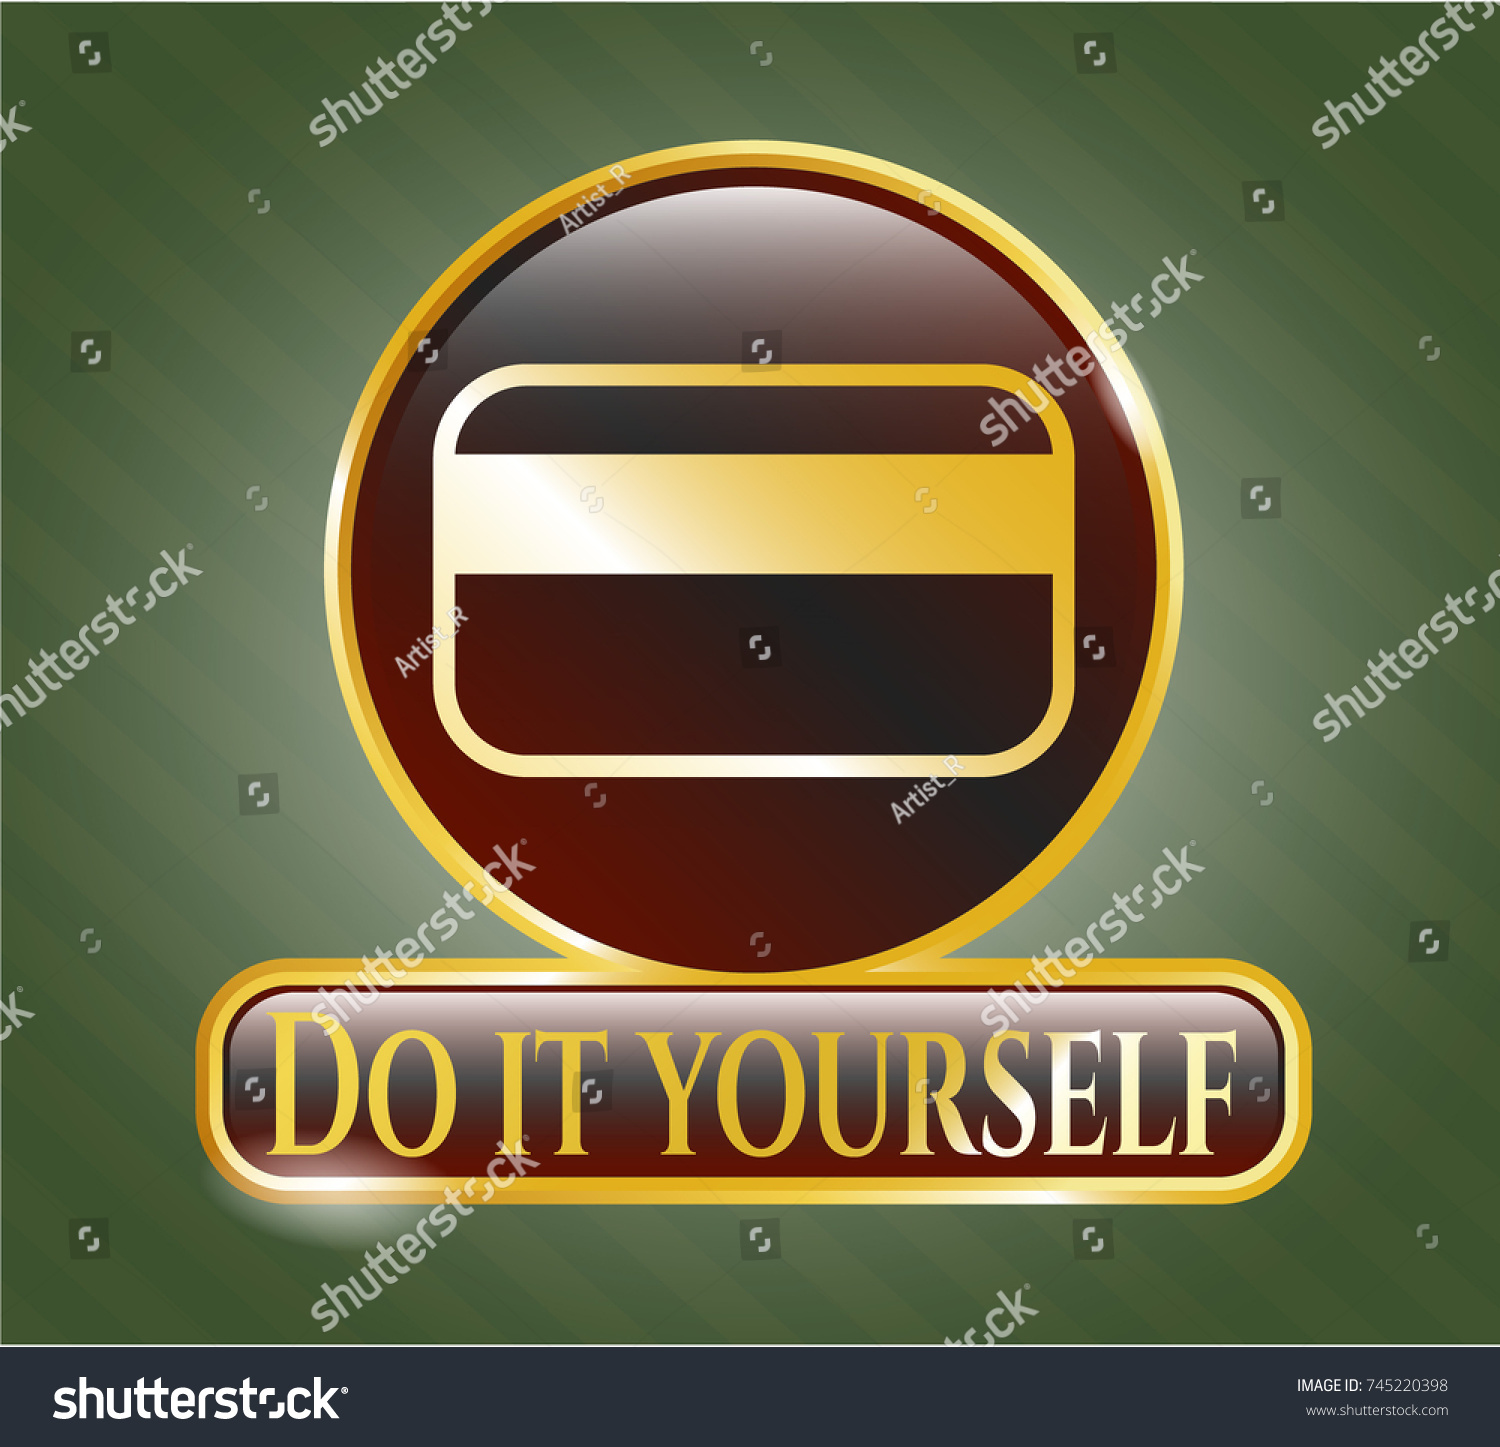 Golden emblem credit card icon do stock vector 745220398 shutterstock golden emblem with credit card icon and do it yourself text inside solutioingenieria Gallery